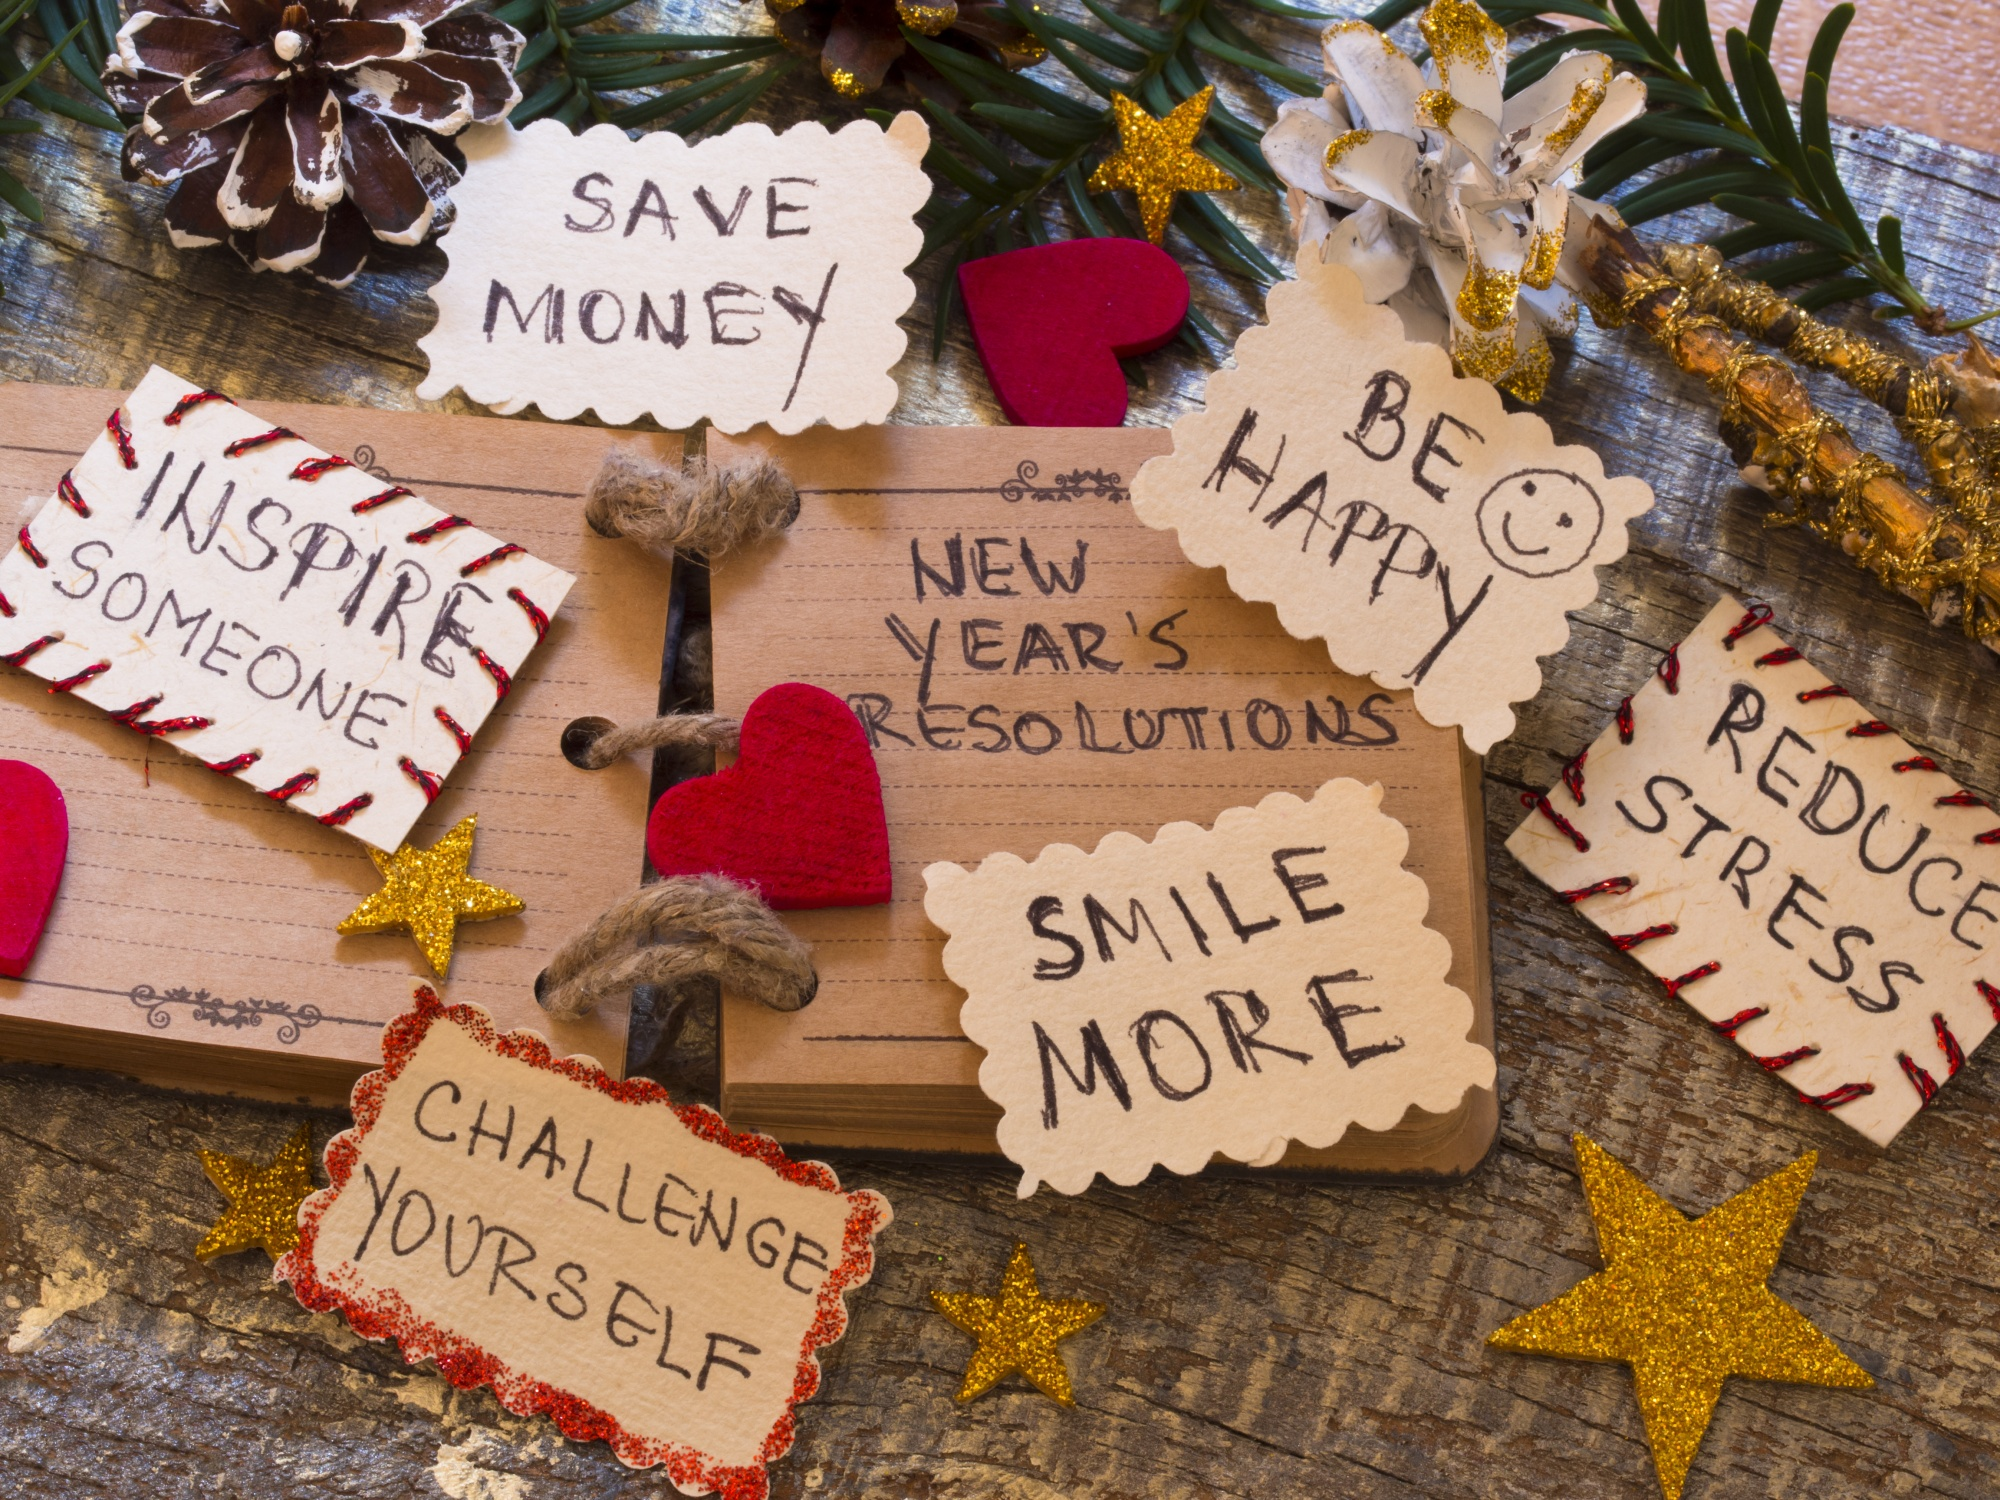 New Year's Resolutions, Rustic journal with New Year's Resolutions on tags surrounded by decroations